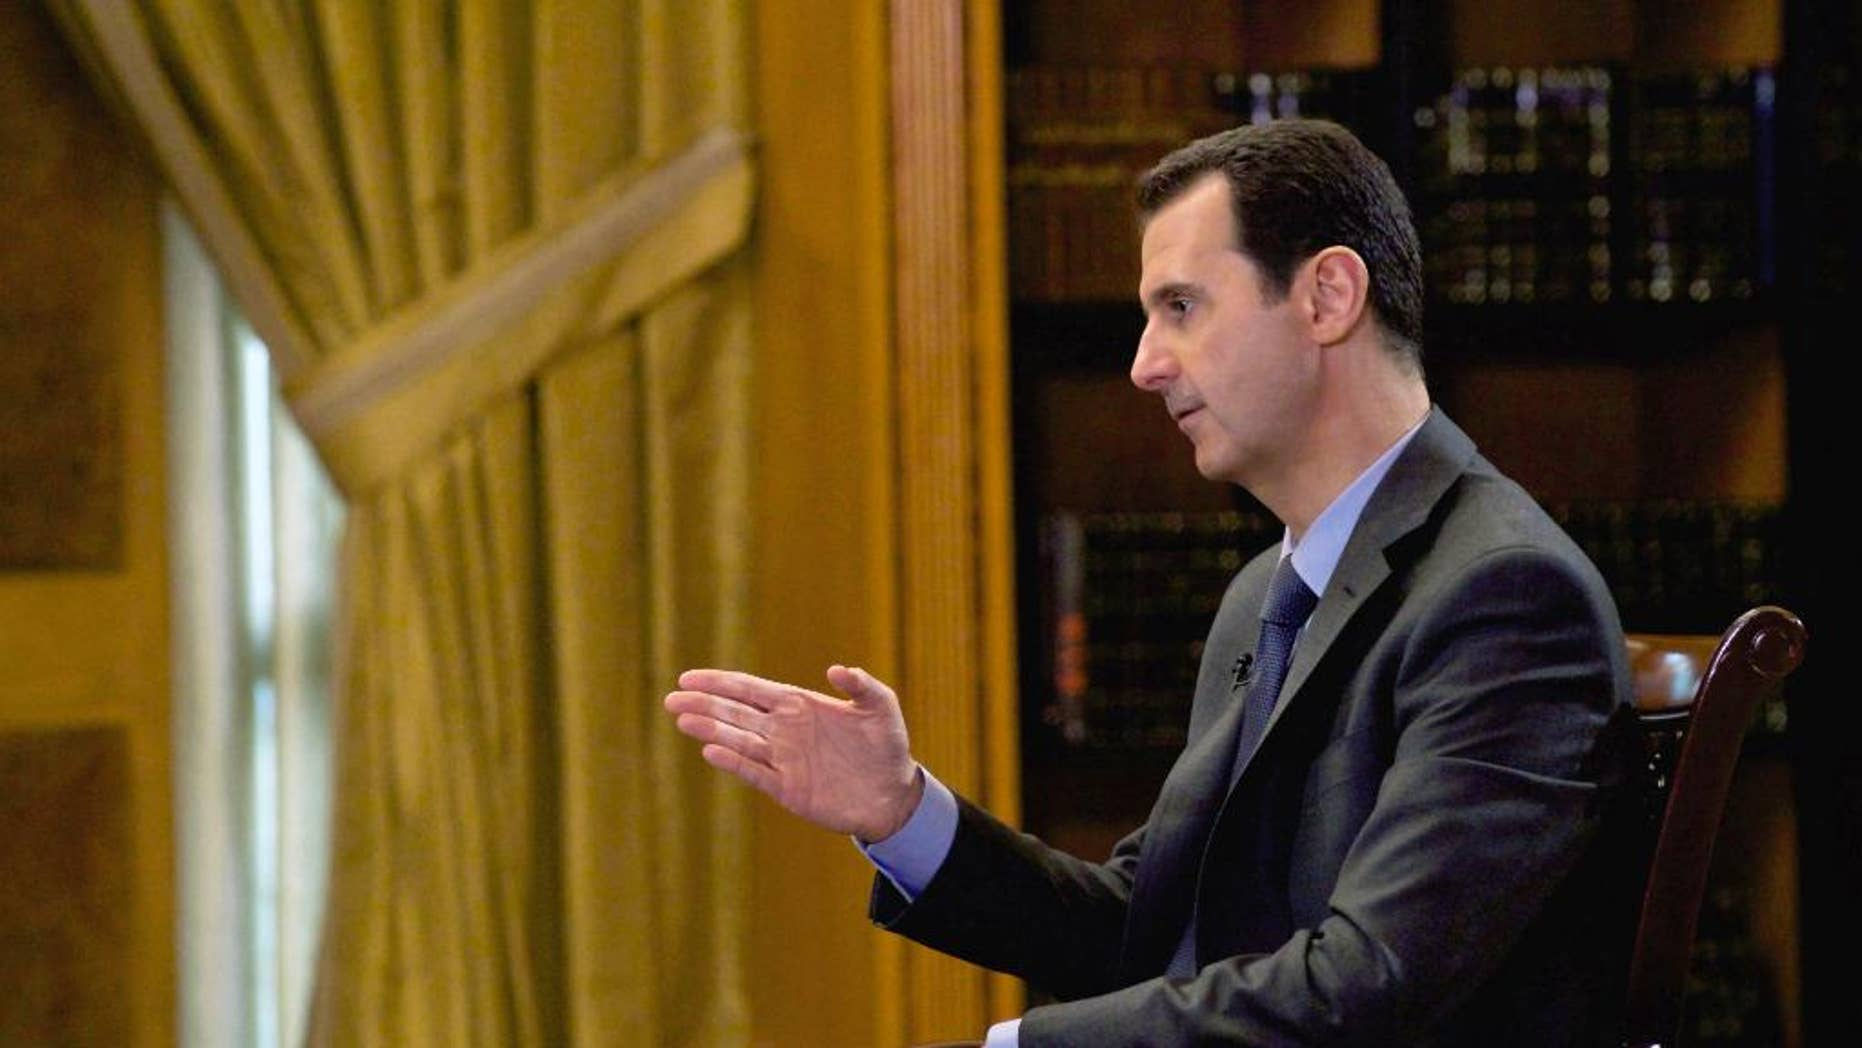 """In this photo released Wednesday, March 4, 2015, by the Syrian official news agency SANA, Syrian President Bashar Assad speaks during an interview with Portuguese state television, RTP, in Damascus, Syria. Assad denied that his troops drop barrels bombs on civilians telling a journalist: """"You are talking about massive propaganda."""" (AP Photo/SANA)"""